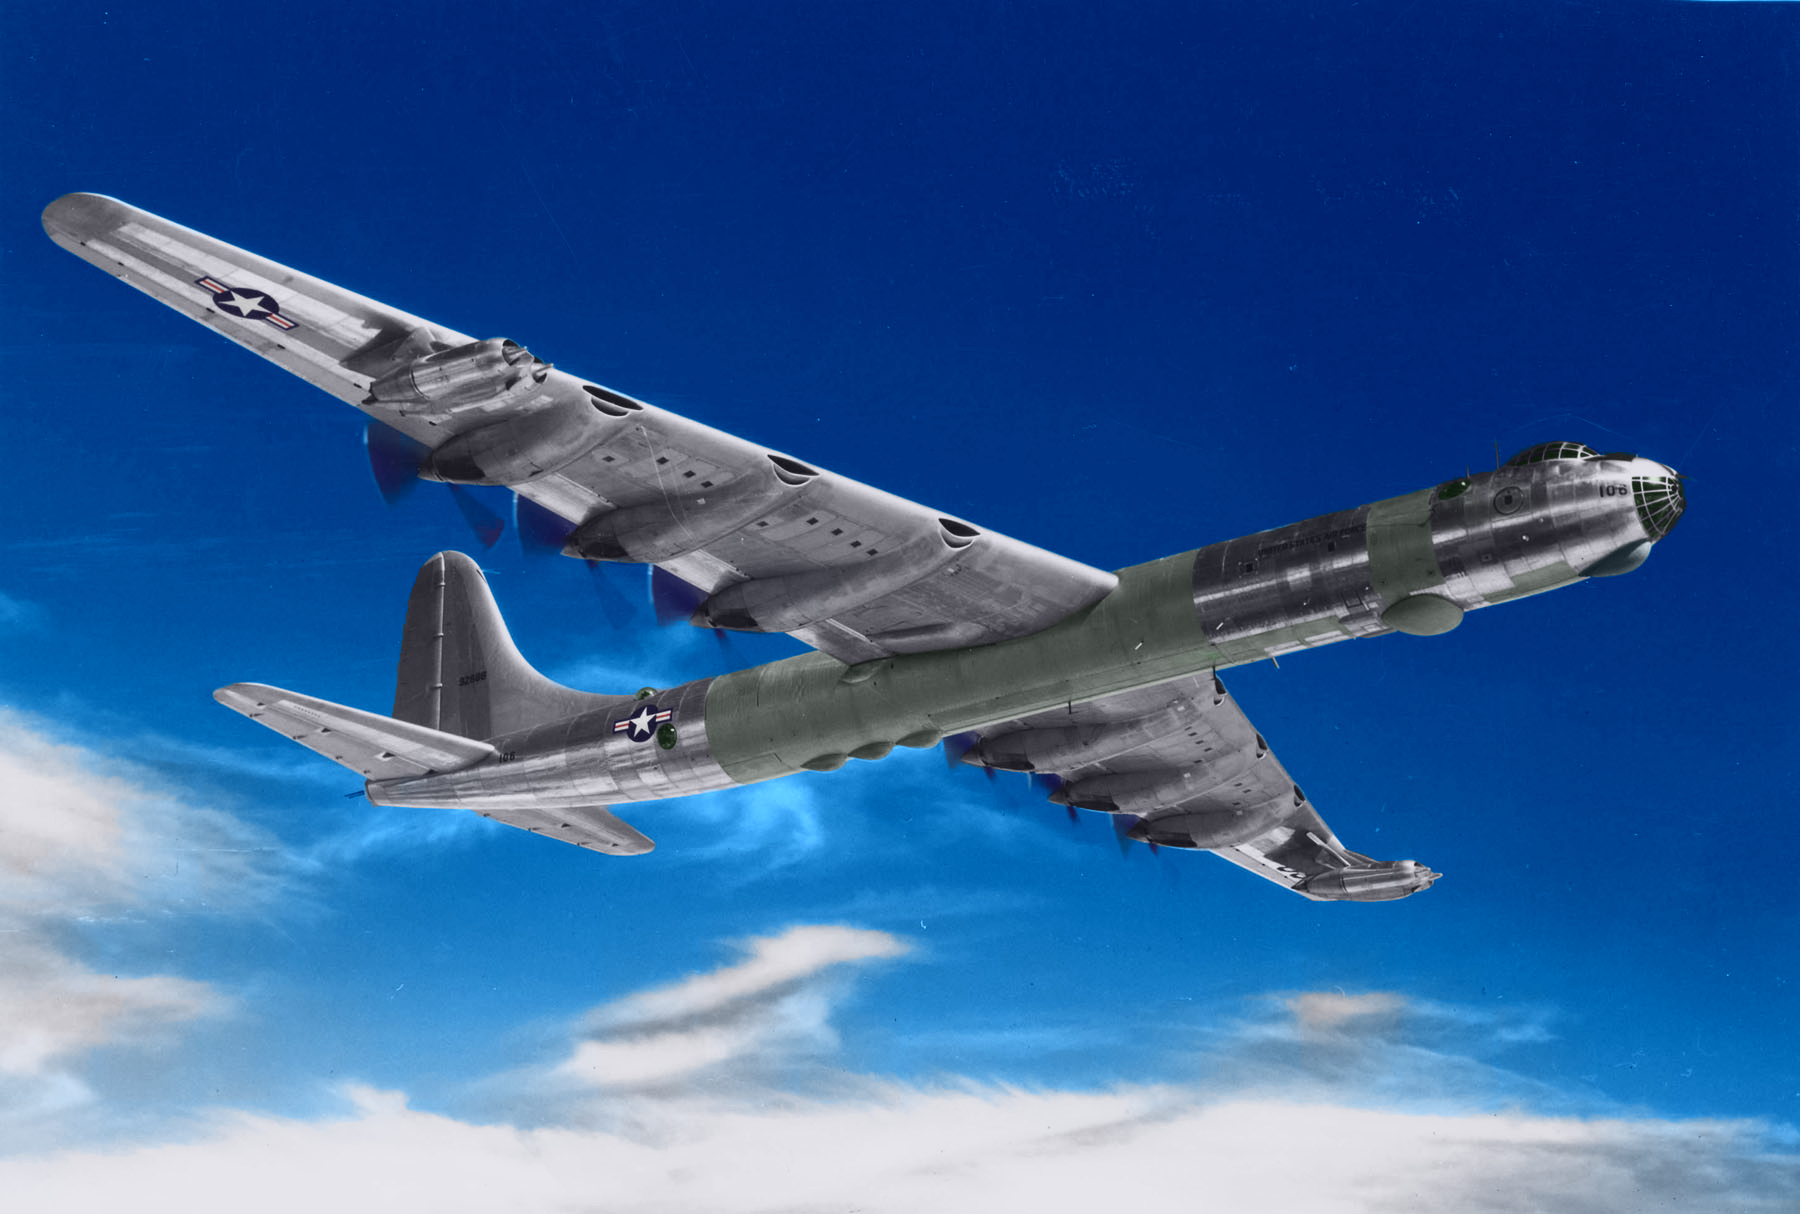 B-36 in Colour by DarkLightningModels